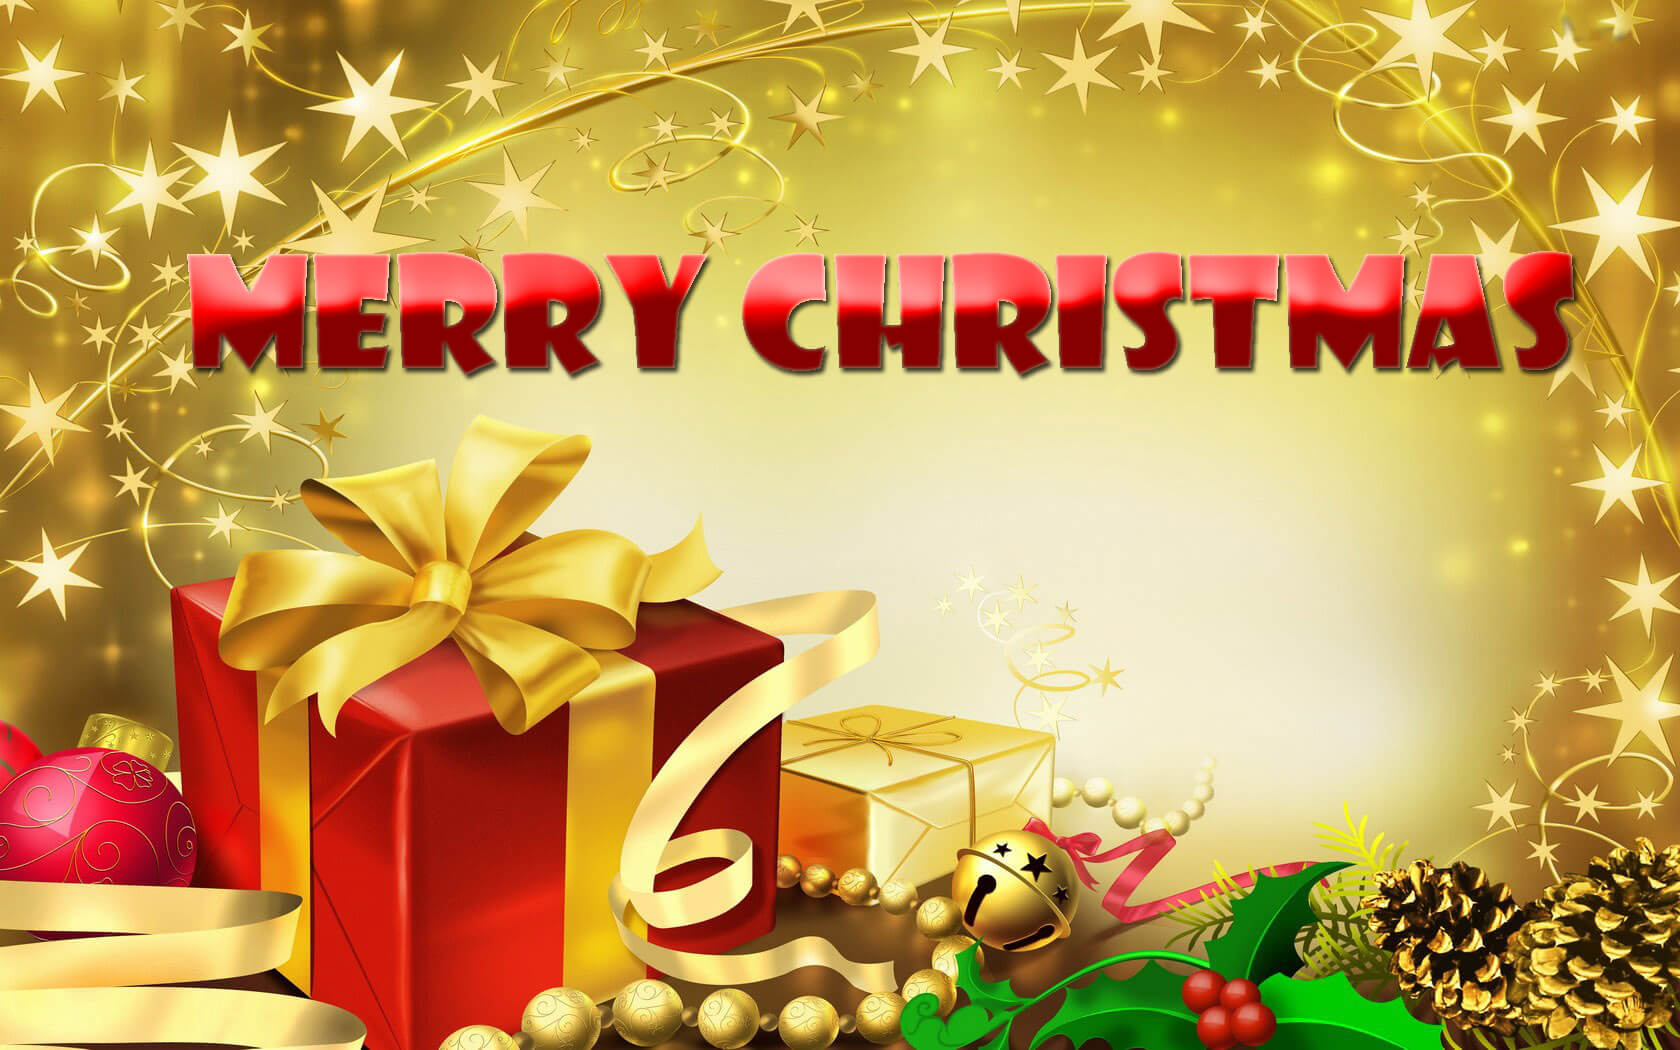 Hd Christmas Wallpaper.Best 70 Happy Merry Christmas Wallpapers Hd 2019 Events Yard